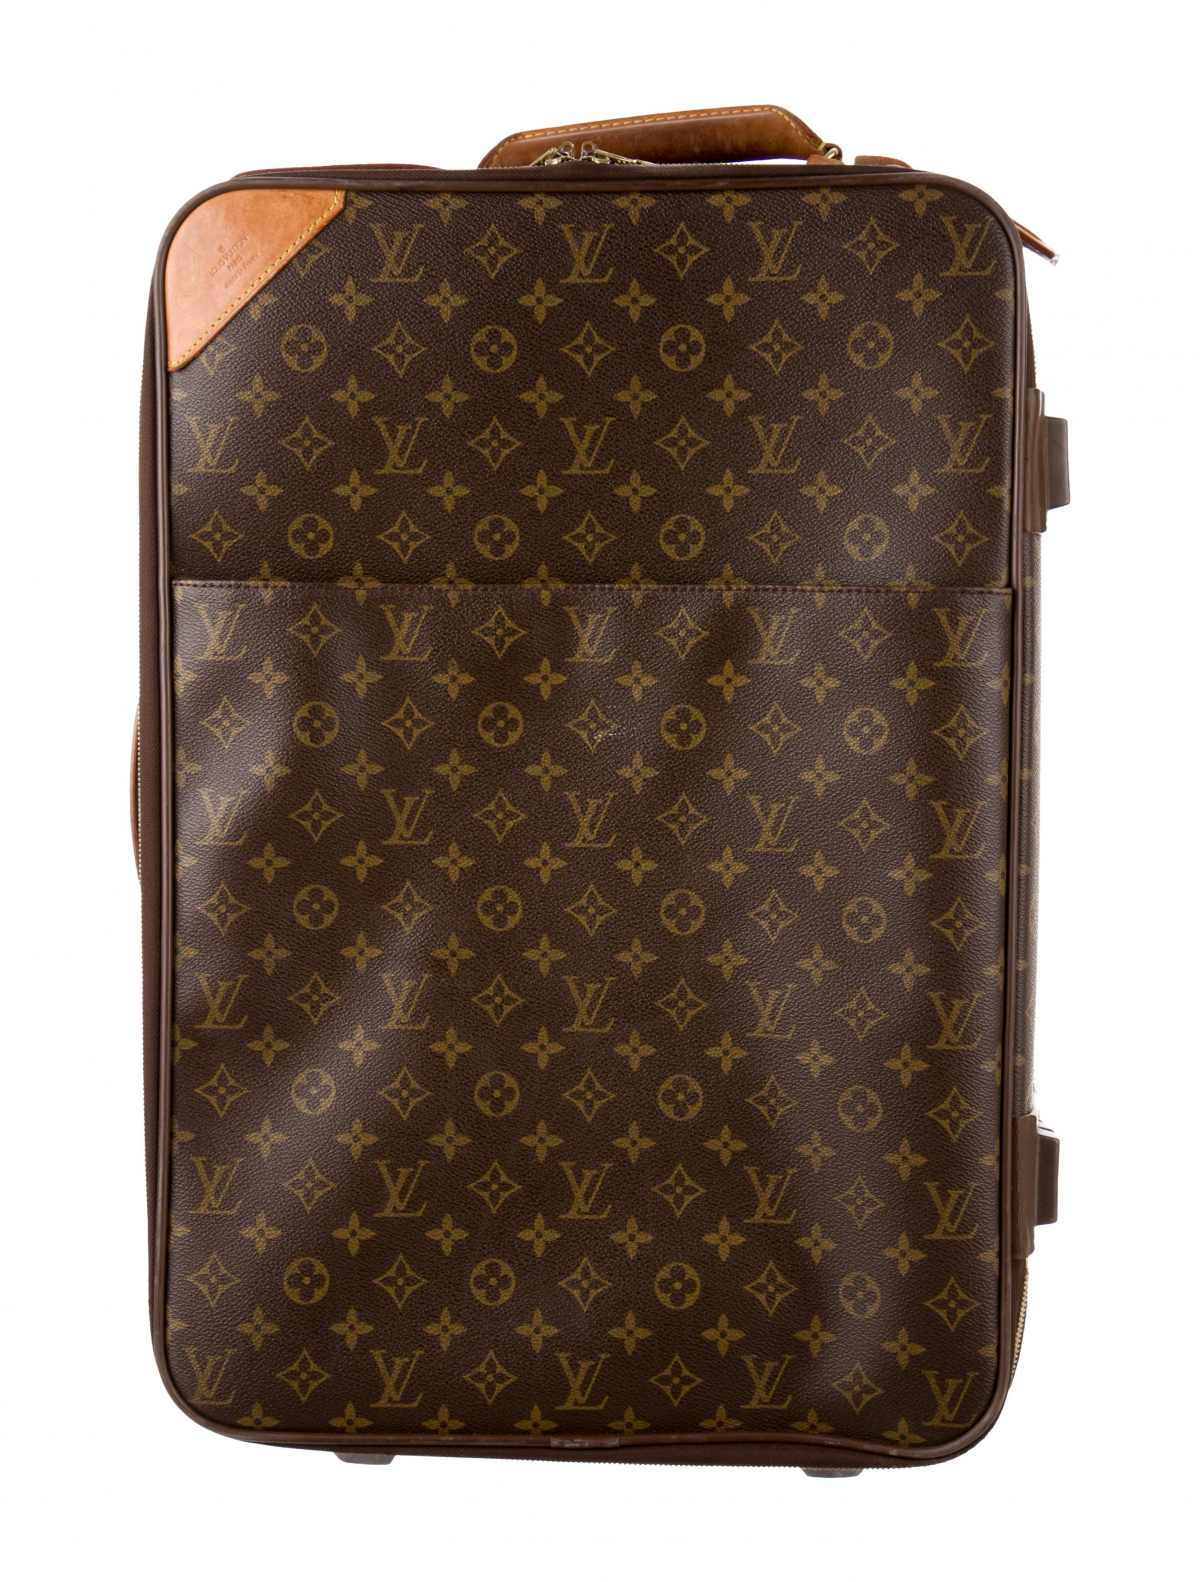 Monogram Pegase 95 by Louis Vuitton, available on therealreal.com for $1895 Olivia Culpo Bags Exact Product